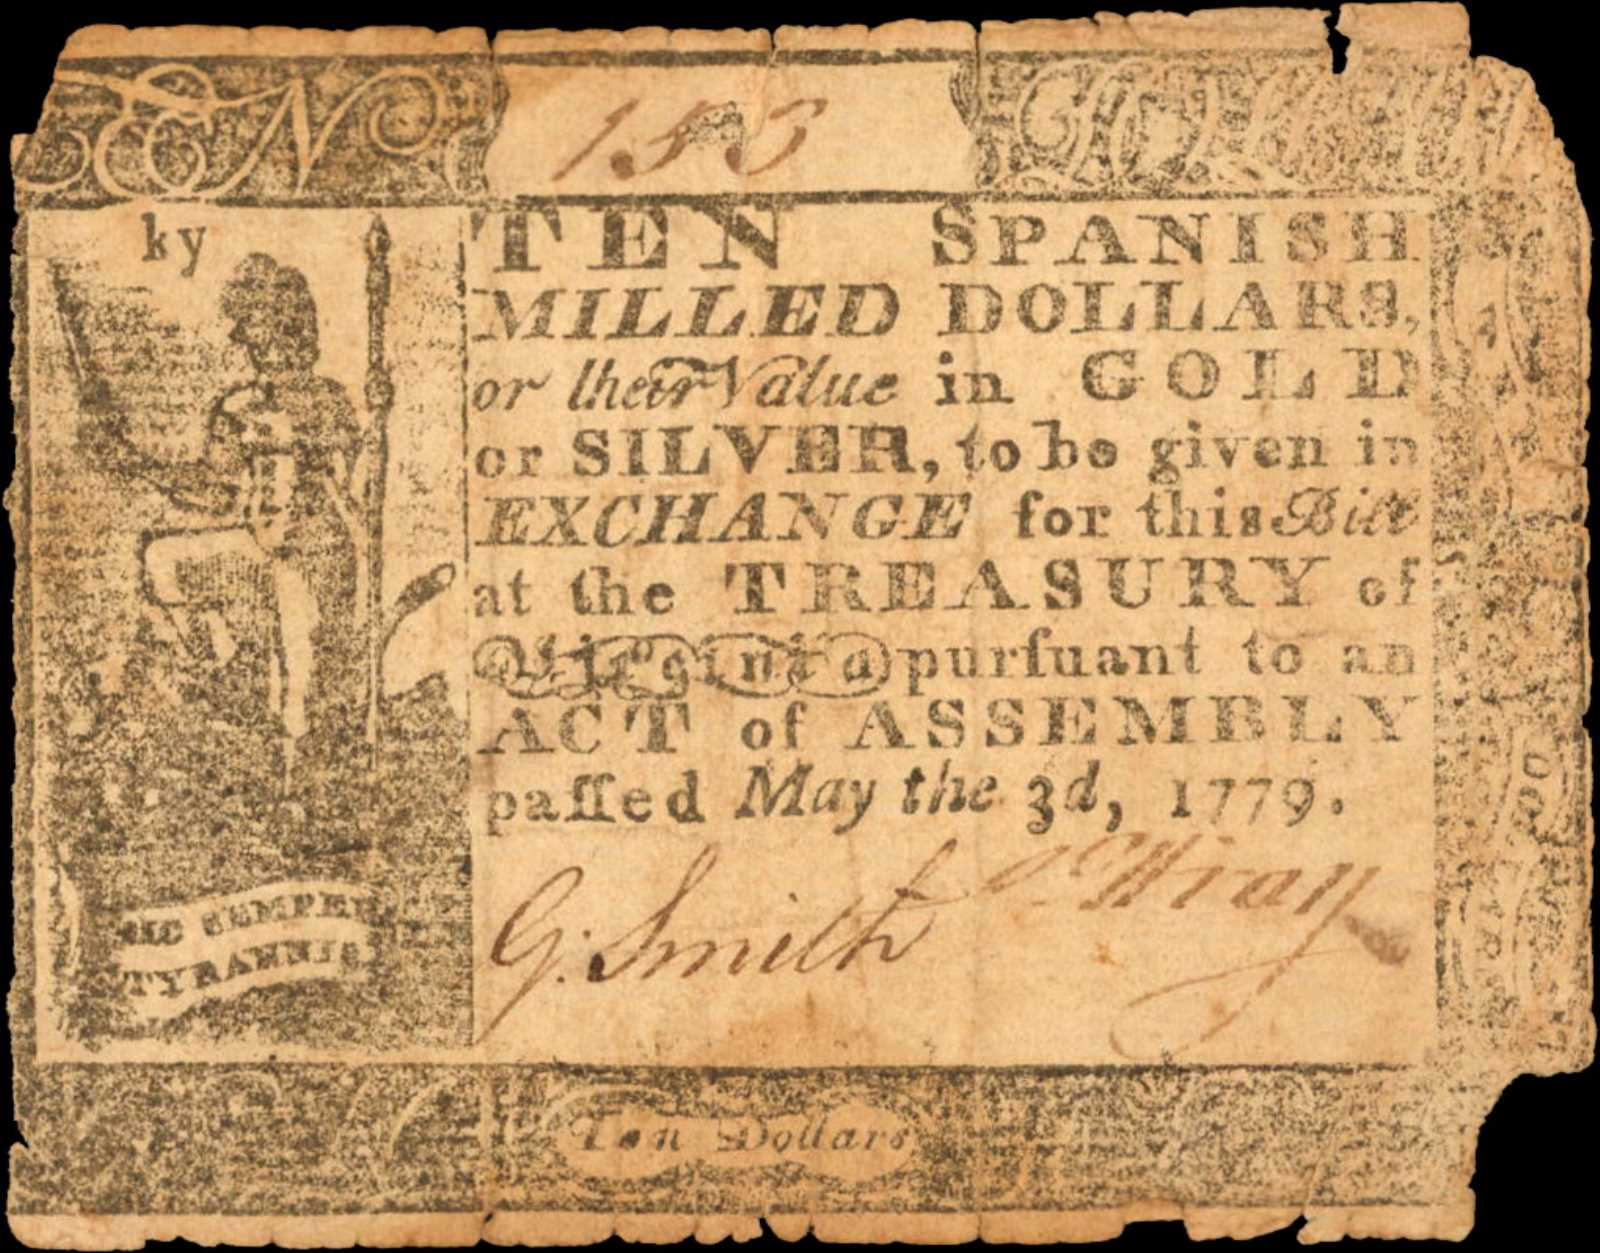 sample image for 1779